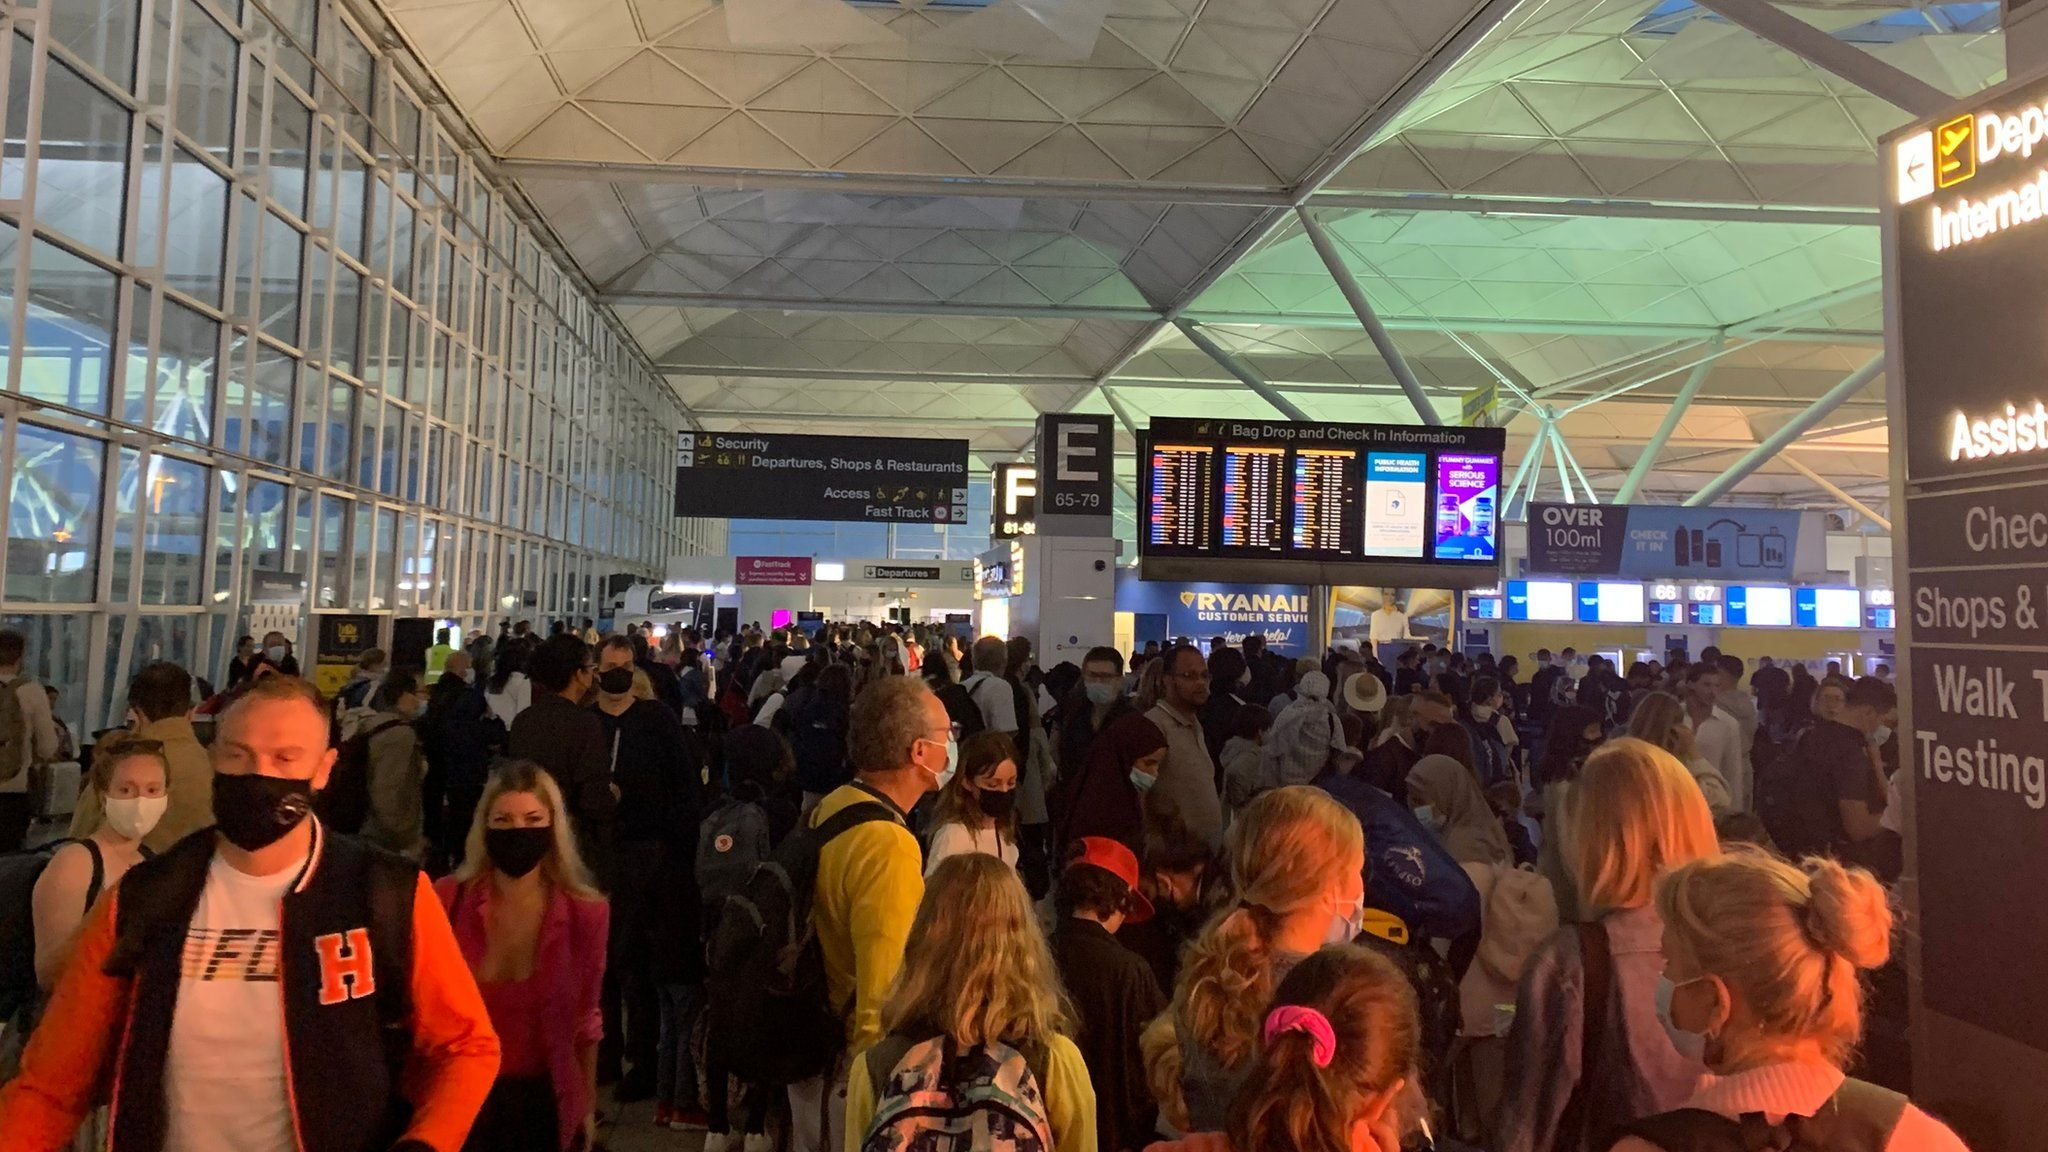 Crowds at London Stansted Airport on Saturday